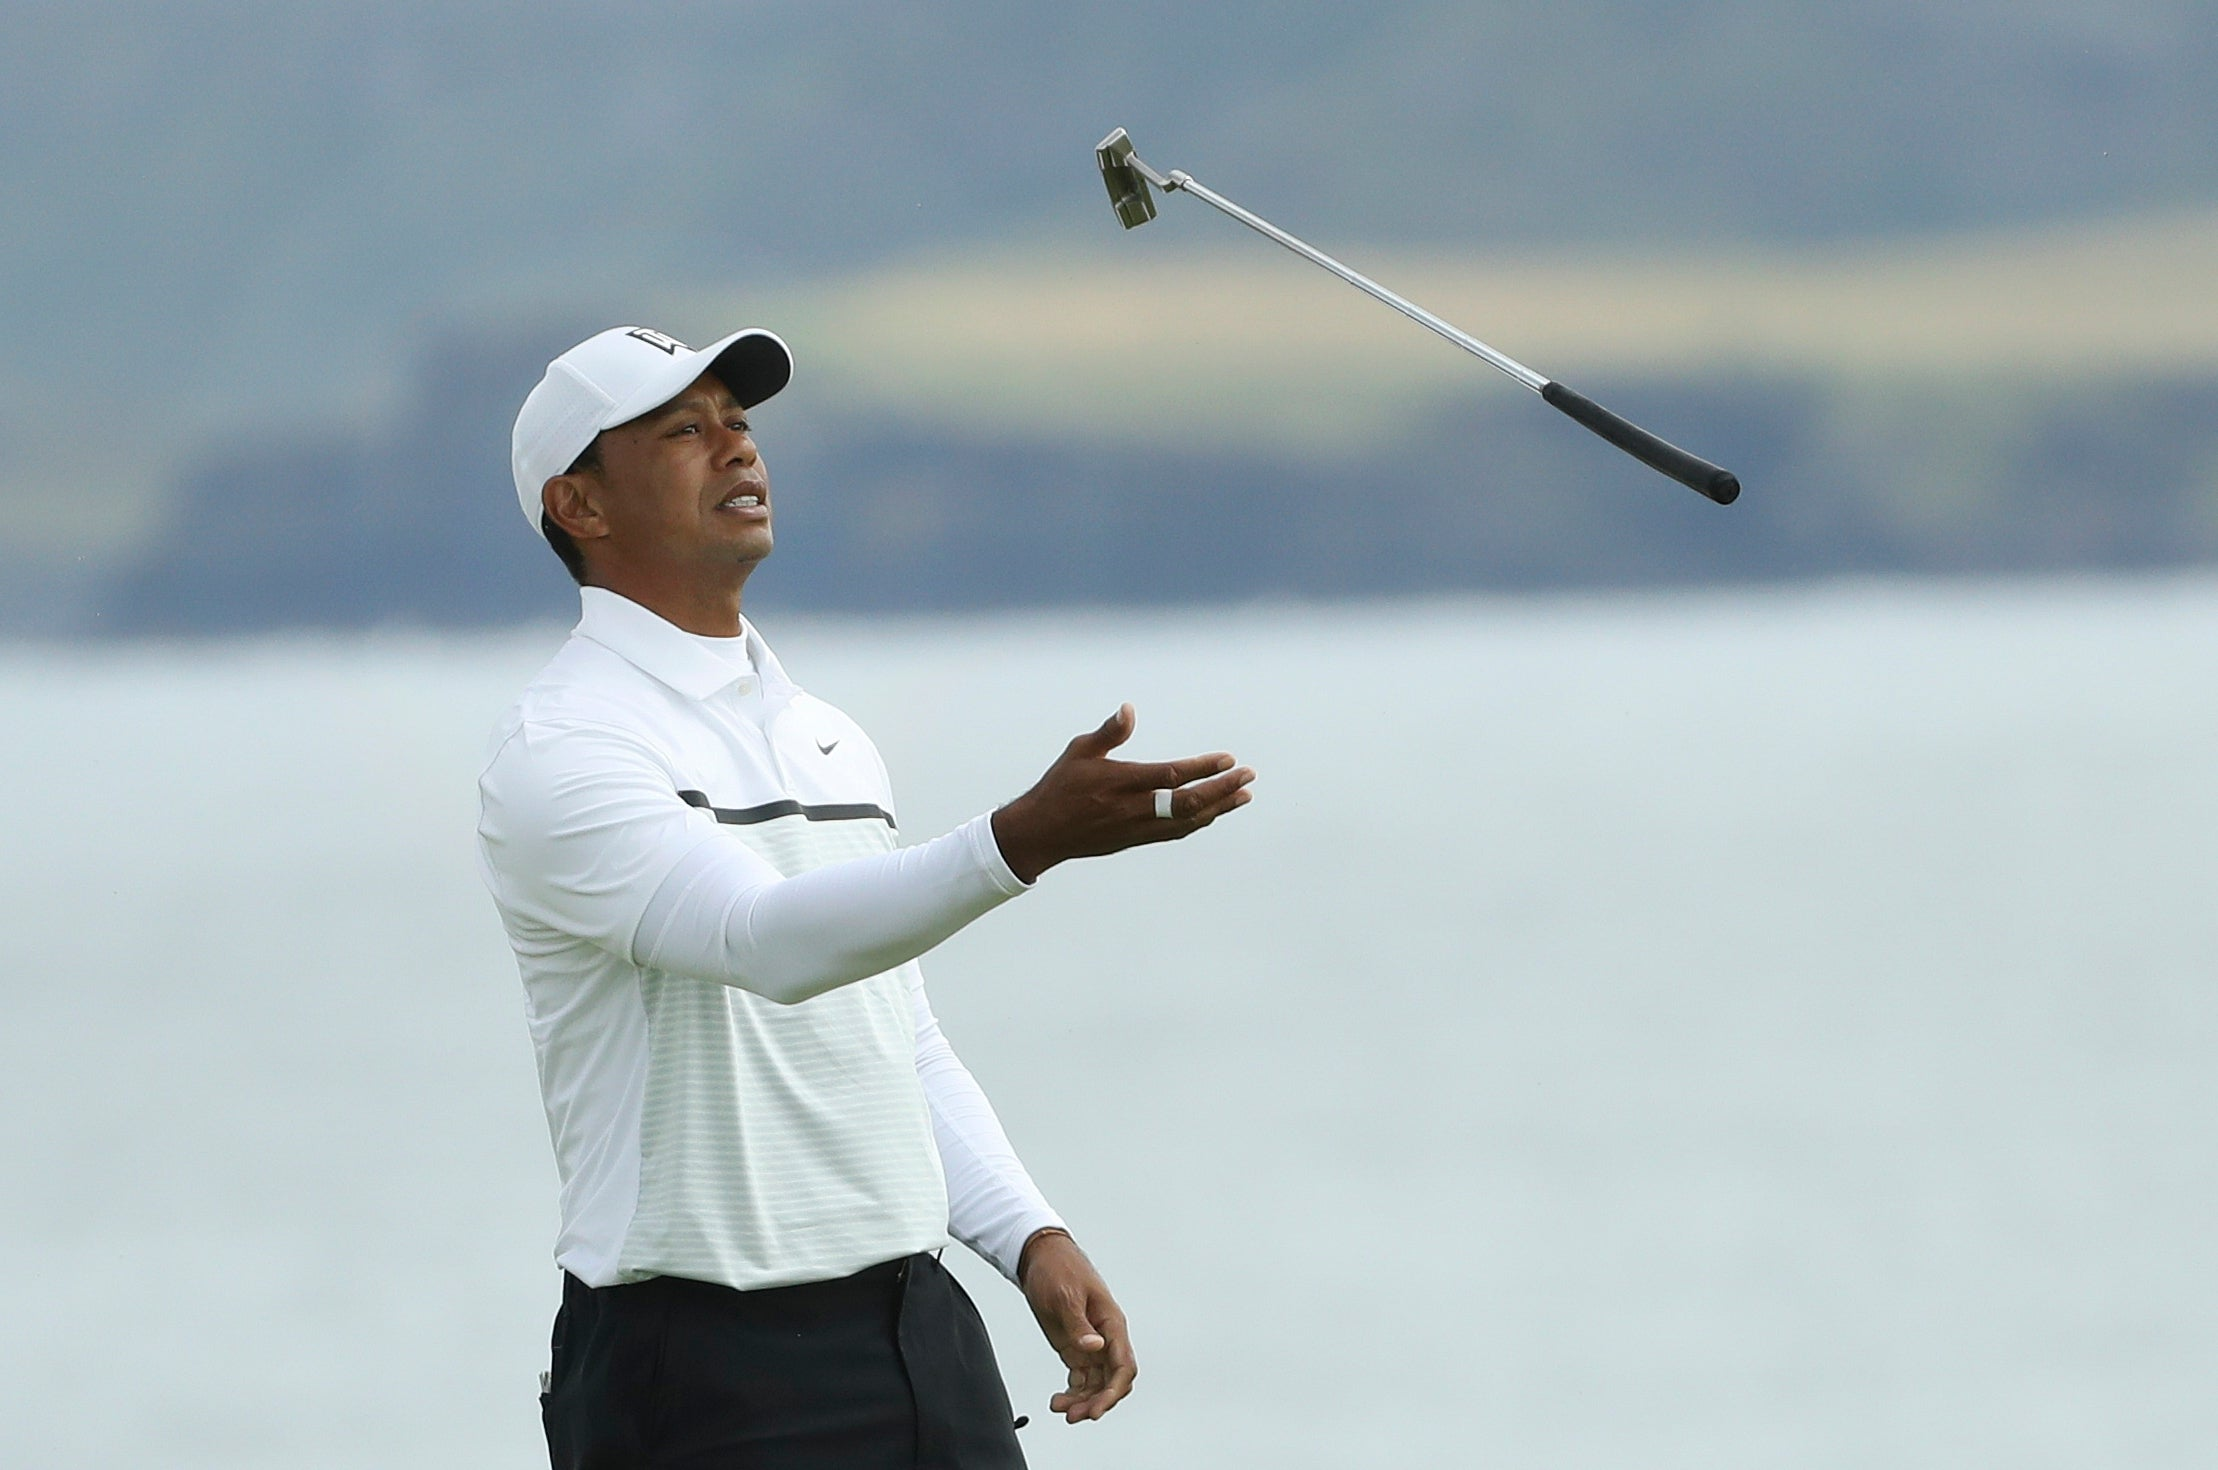 a0d63a765 Tiger Woods - latest news, breaking stories and comment - The ...